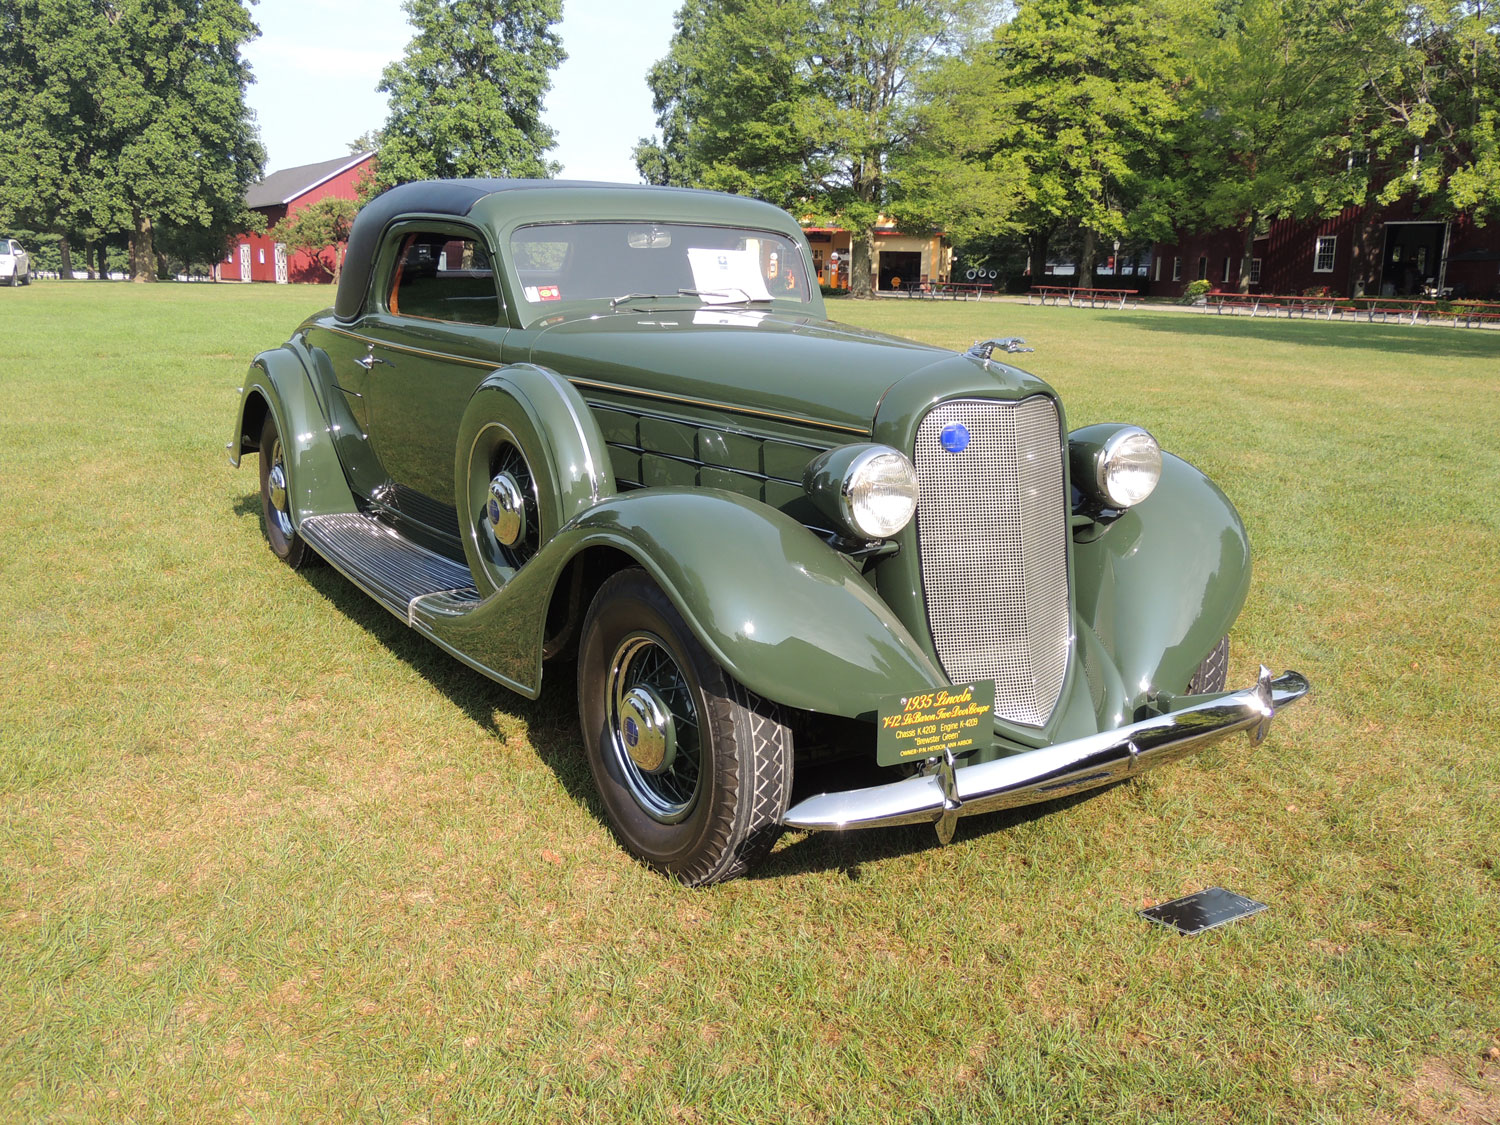 Best in show: 1935 Lincoln LeBaron coupe owned by Dr. Peter Heydon.